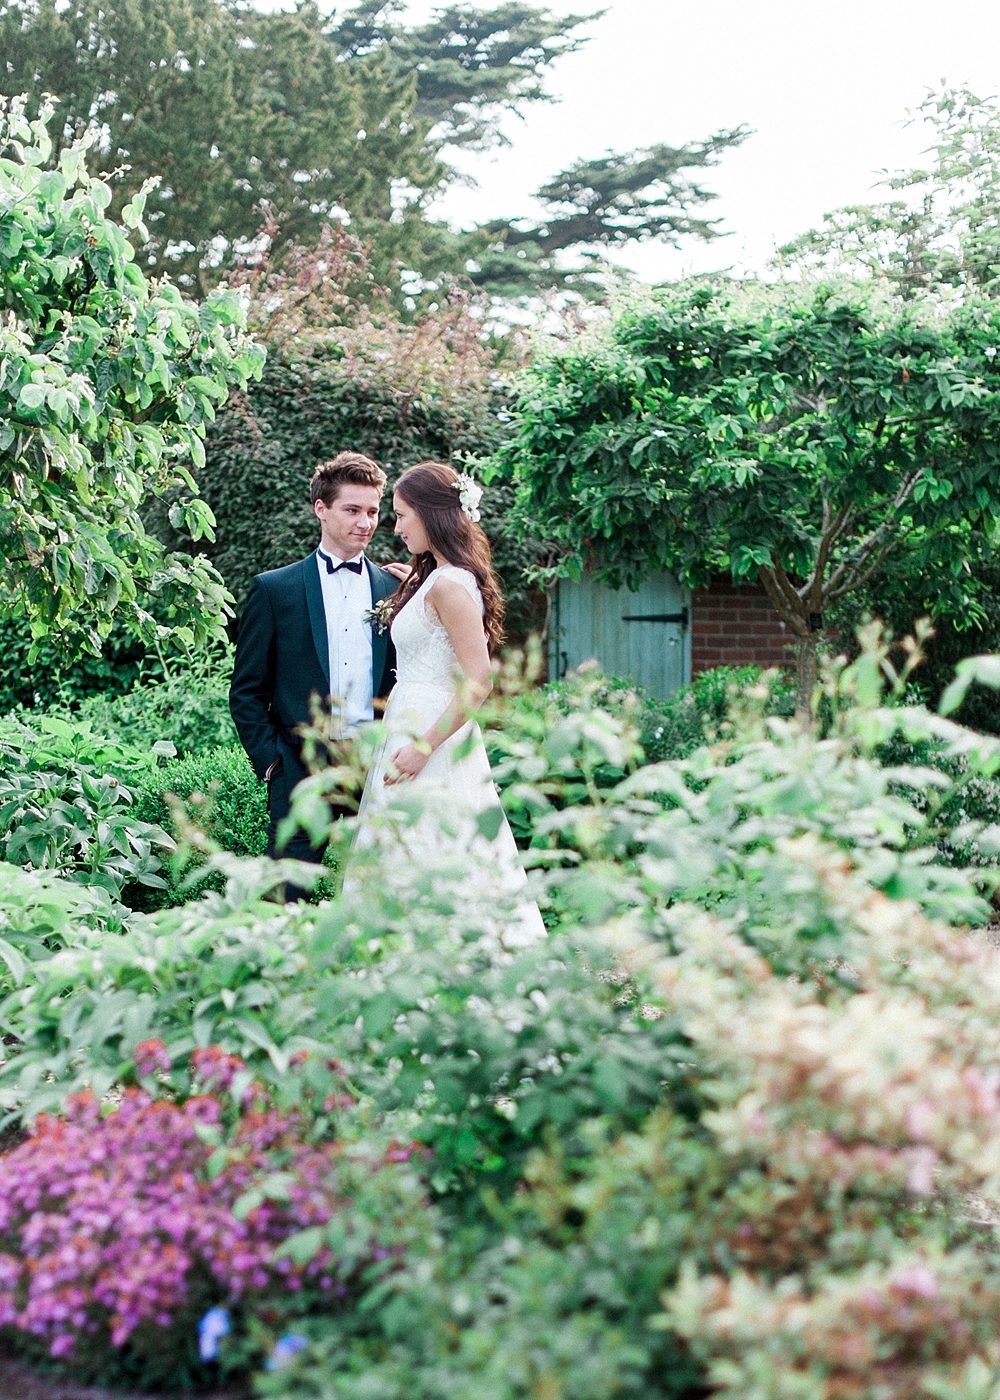 Wickham House Elopement -Kate Nielen Photography -